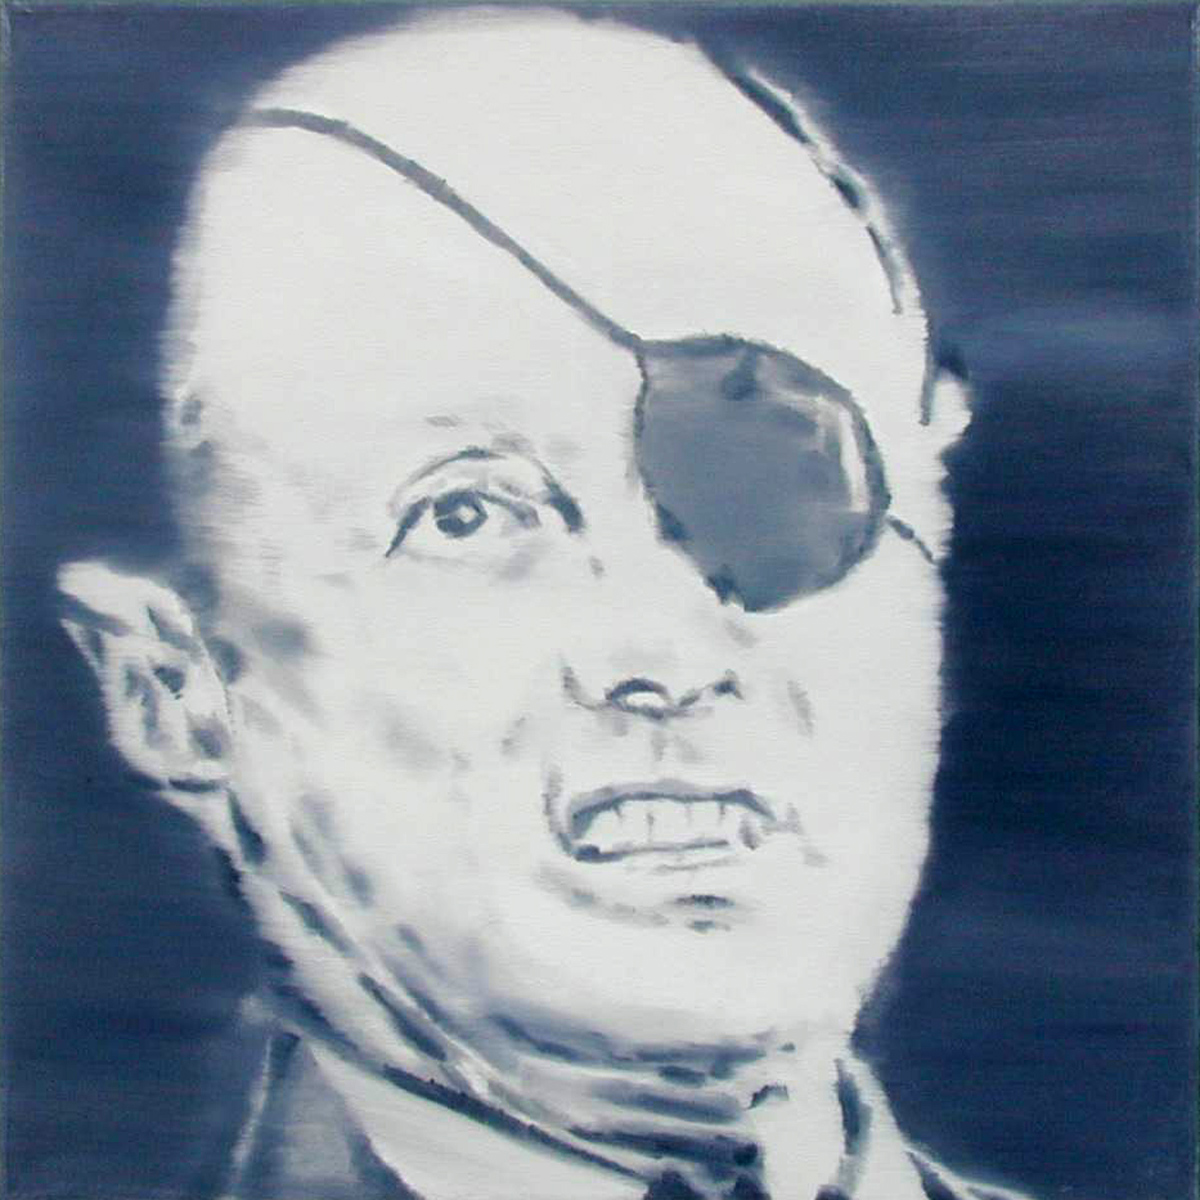 Completion of Sight (Moshe Dayan)